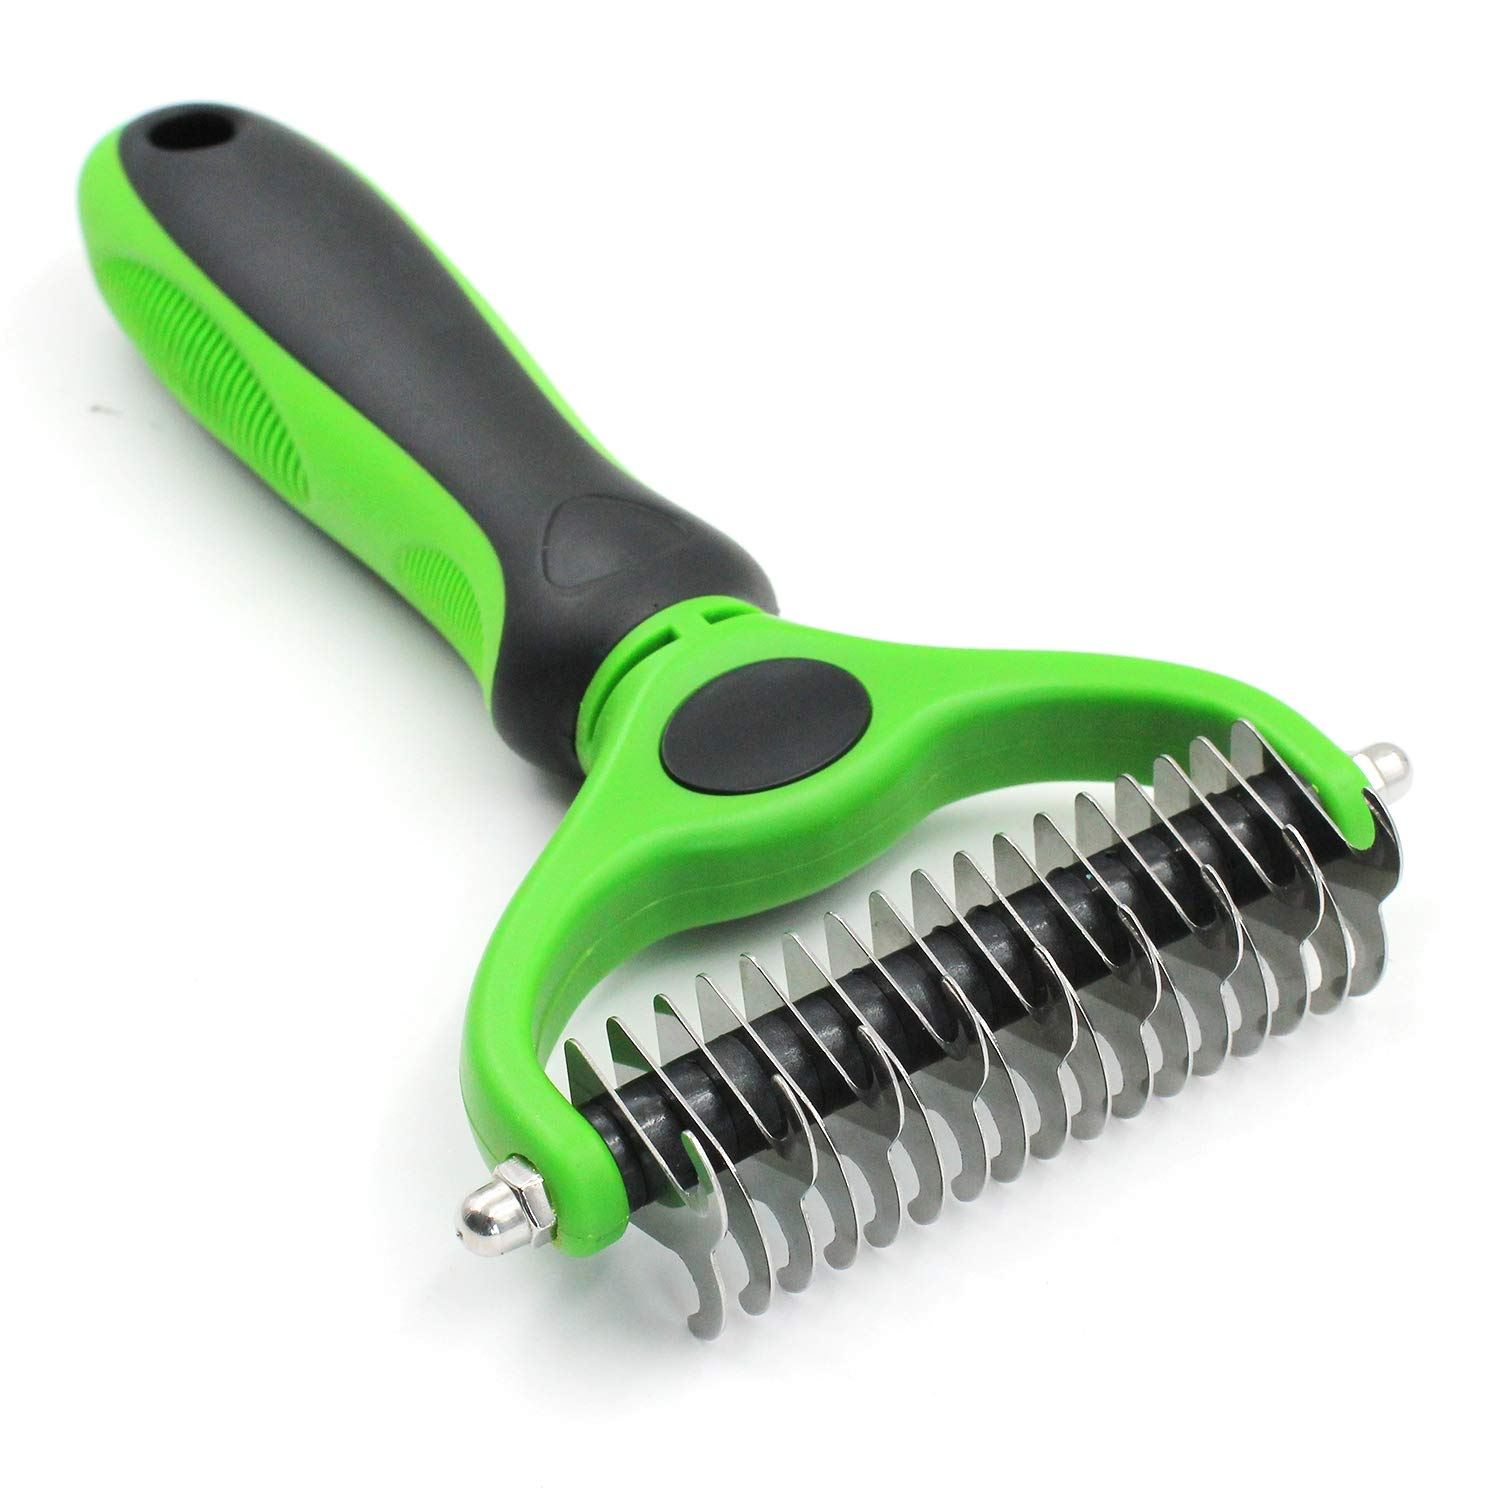 PET HOUND Dematting Tool for Dogs-2 Sided Undercoat Rake for Cats & Dogs-Safe and Gentle Grooming